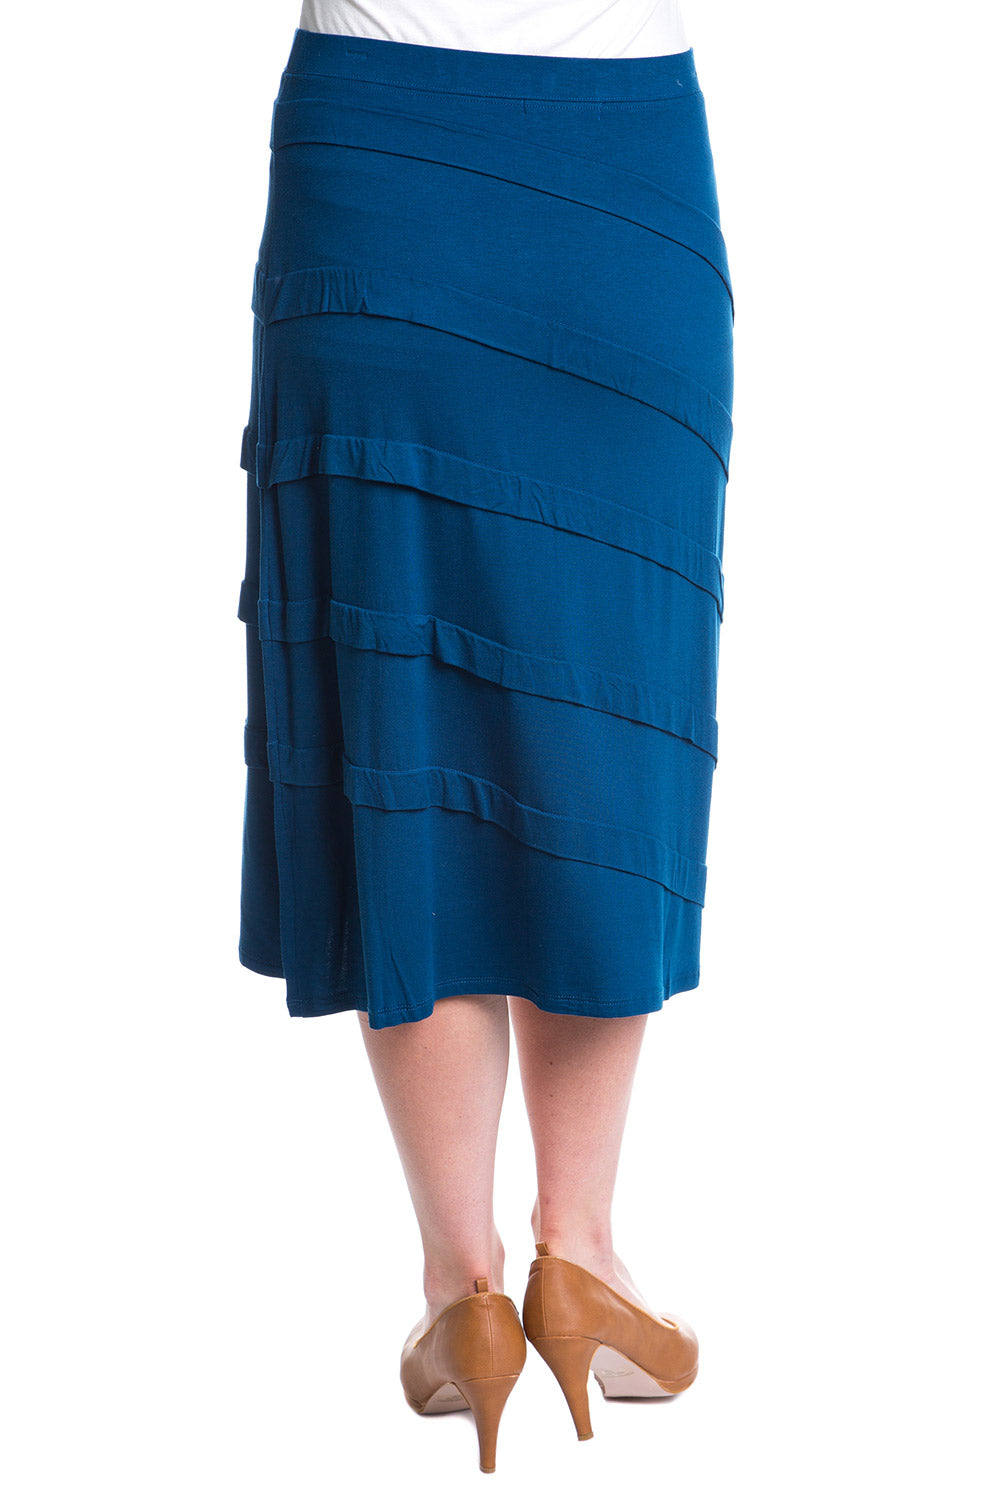 Type 3 Pleated Perfection Skirt In Peacock Blue